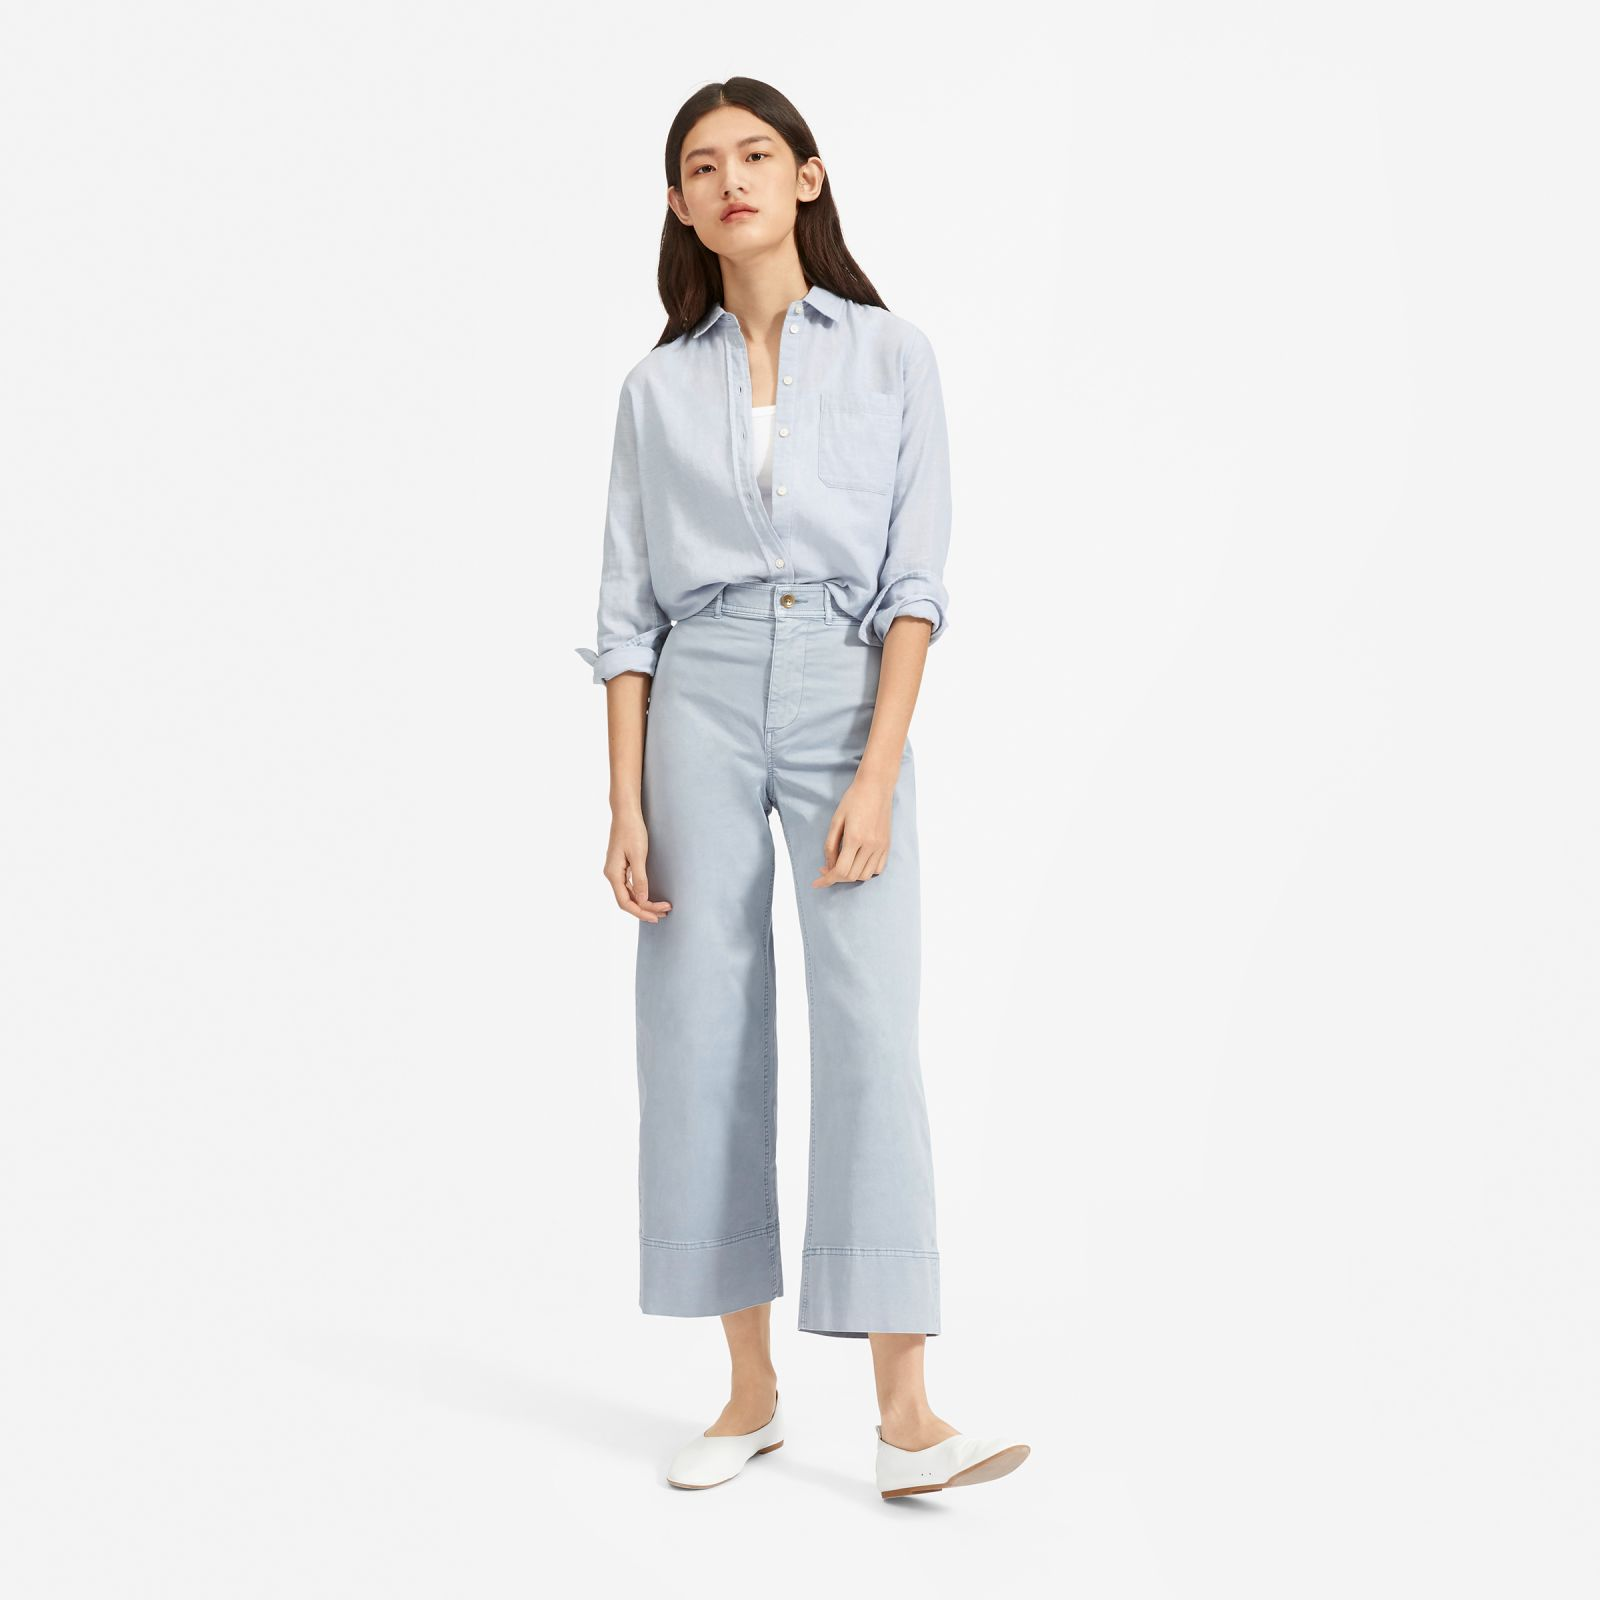 women's lightweight wide leg chino by everlane in pale blue, size 16